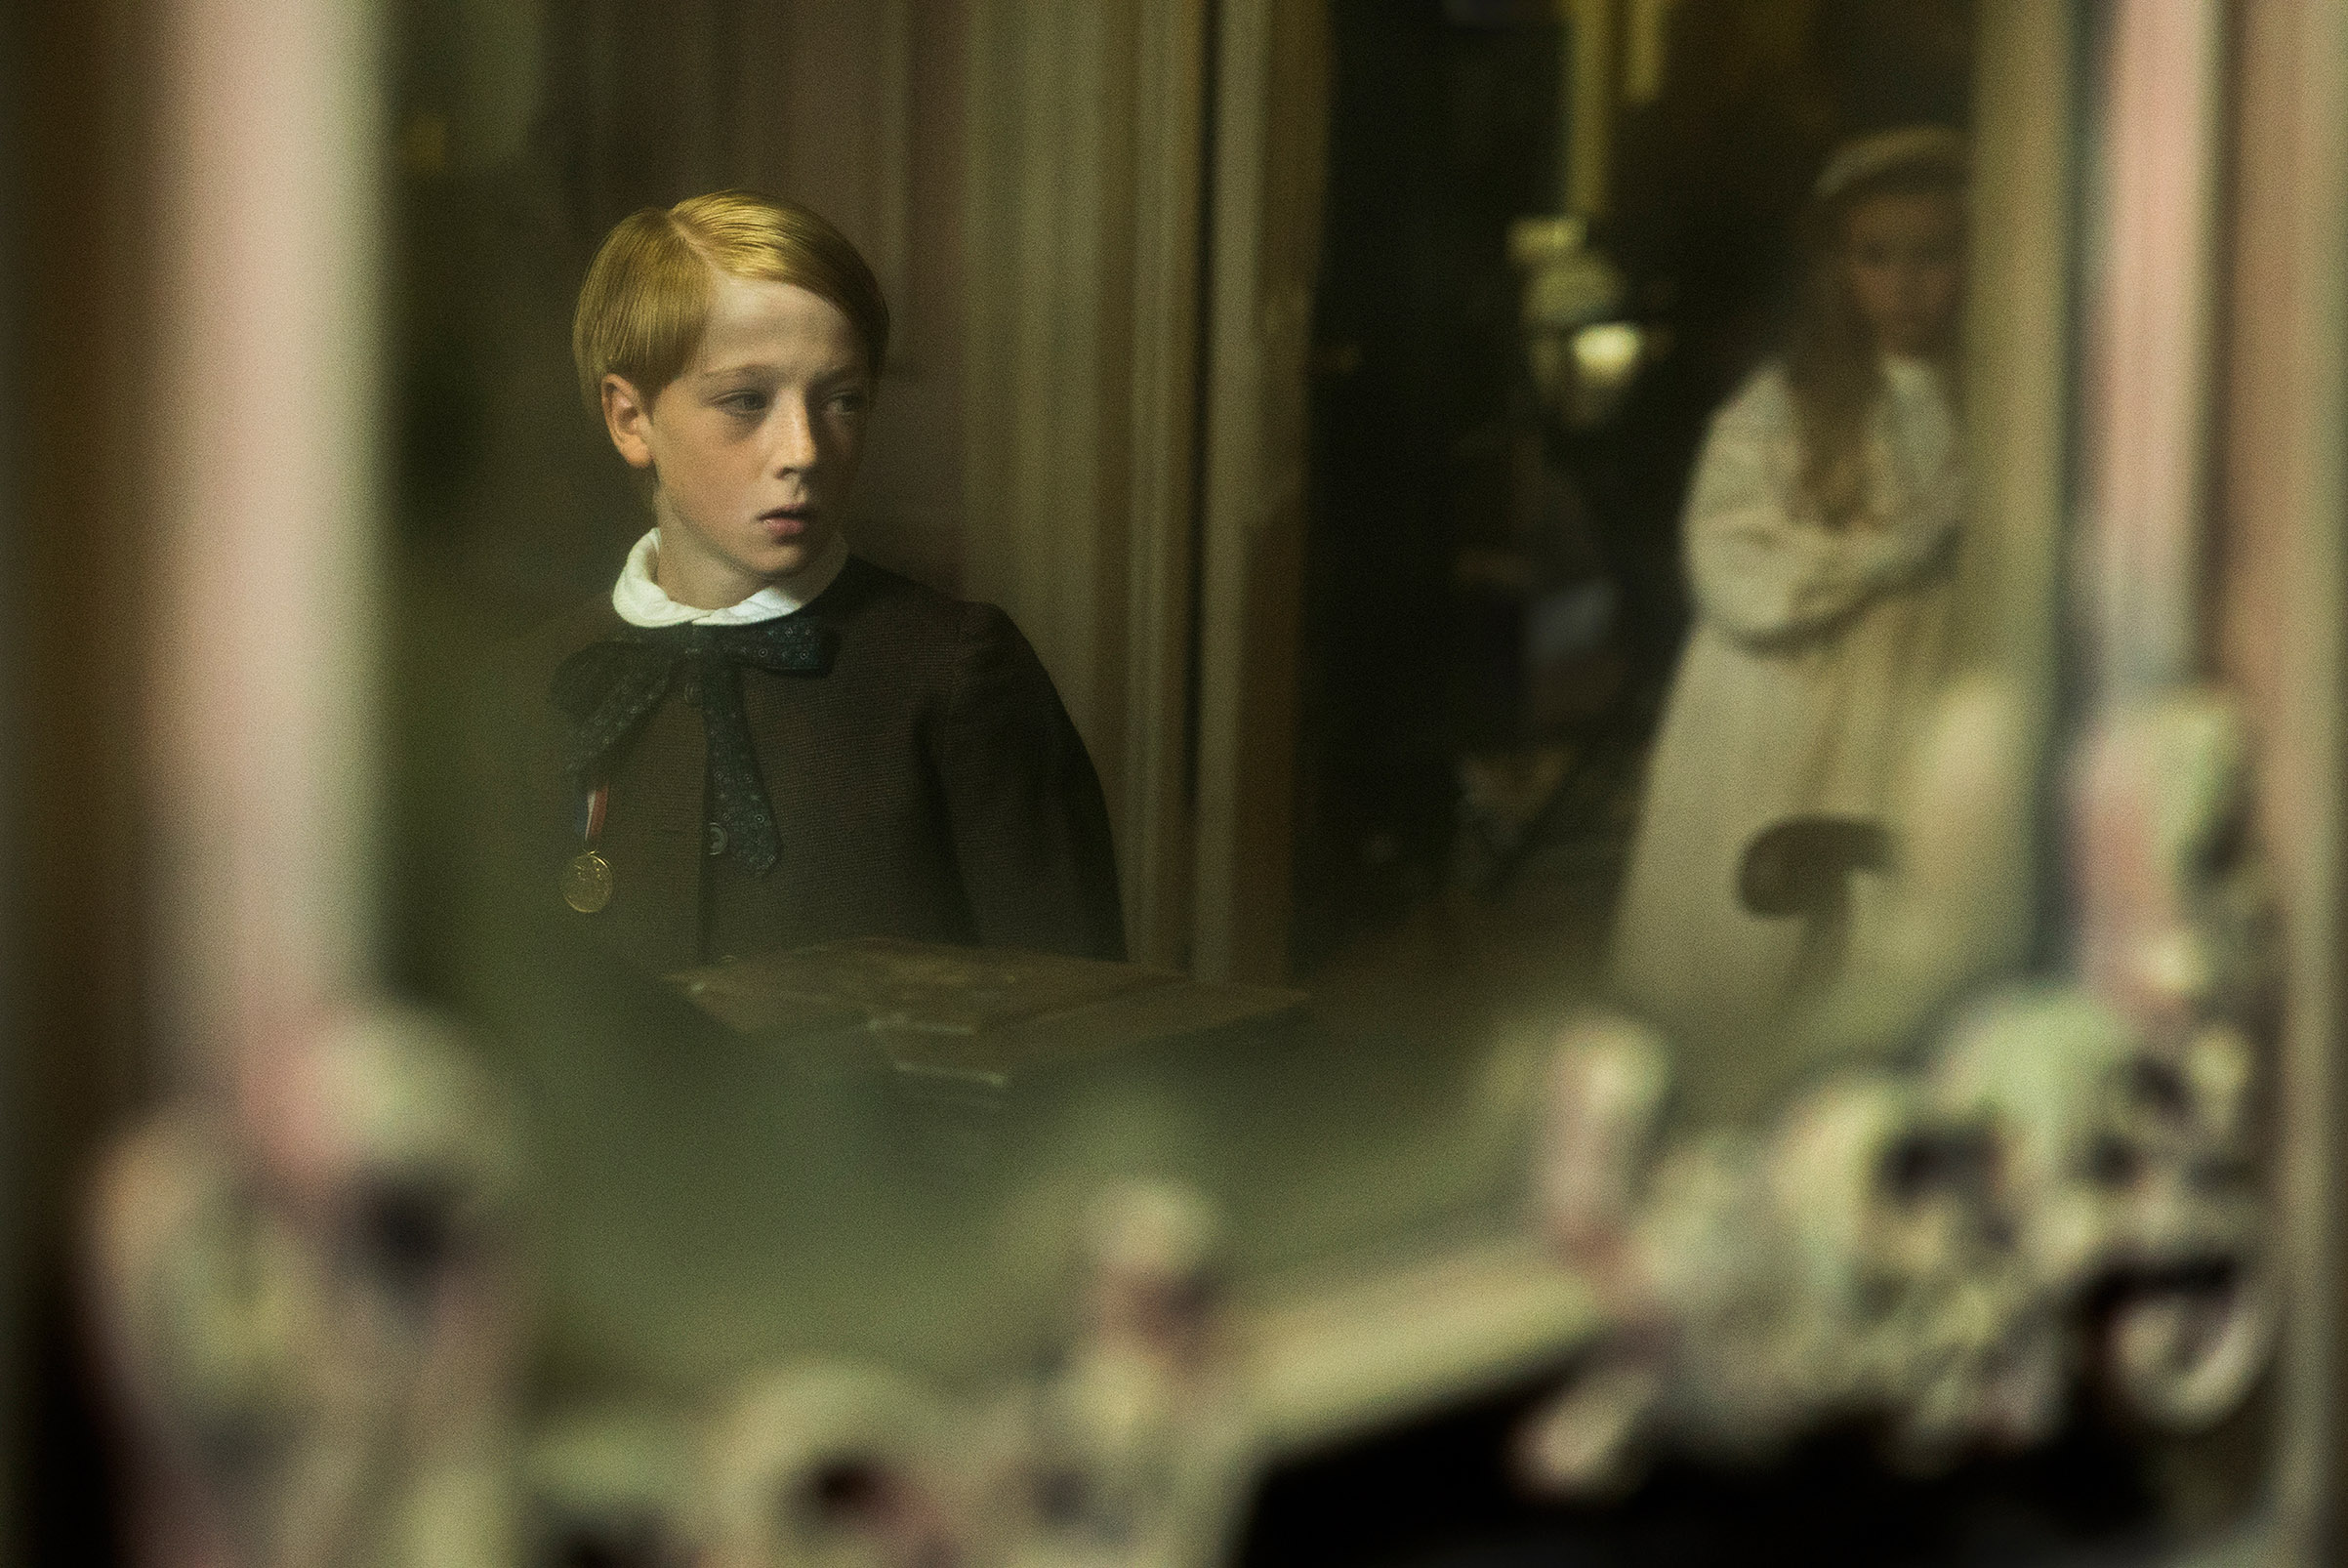 Tipper Seifert-Cleveland and Oliver Zetterström in <i>The Little Stranger</i>.